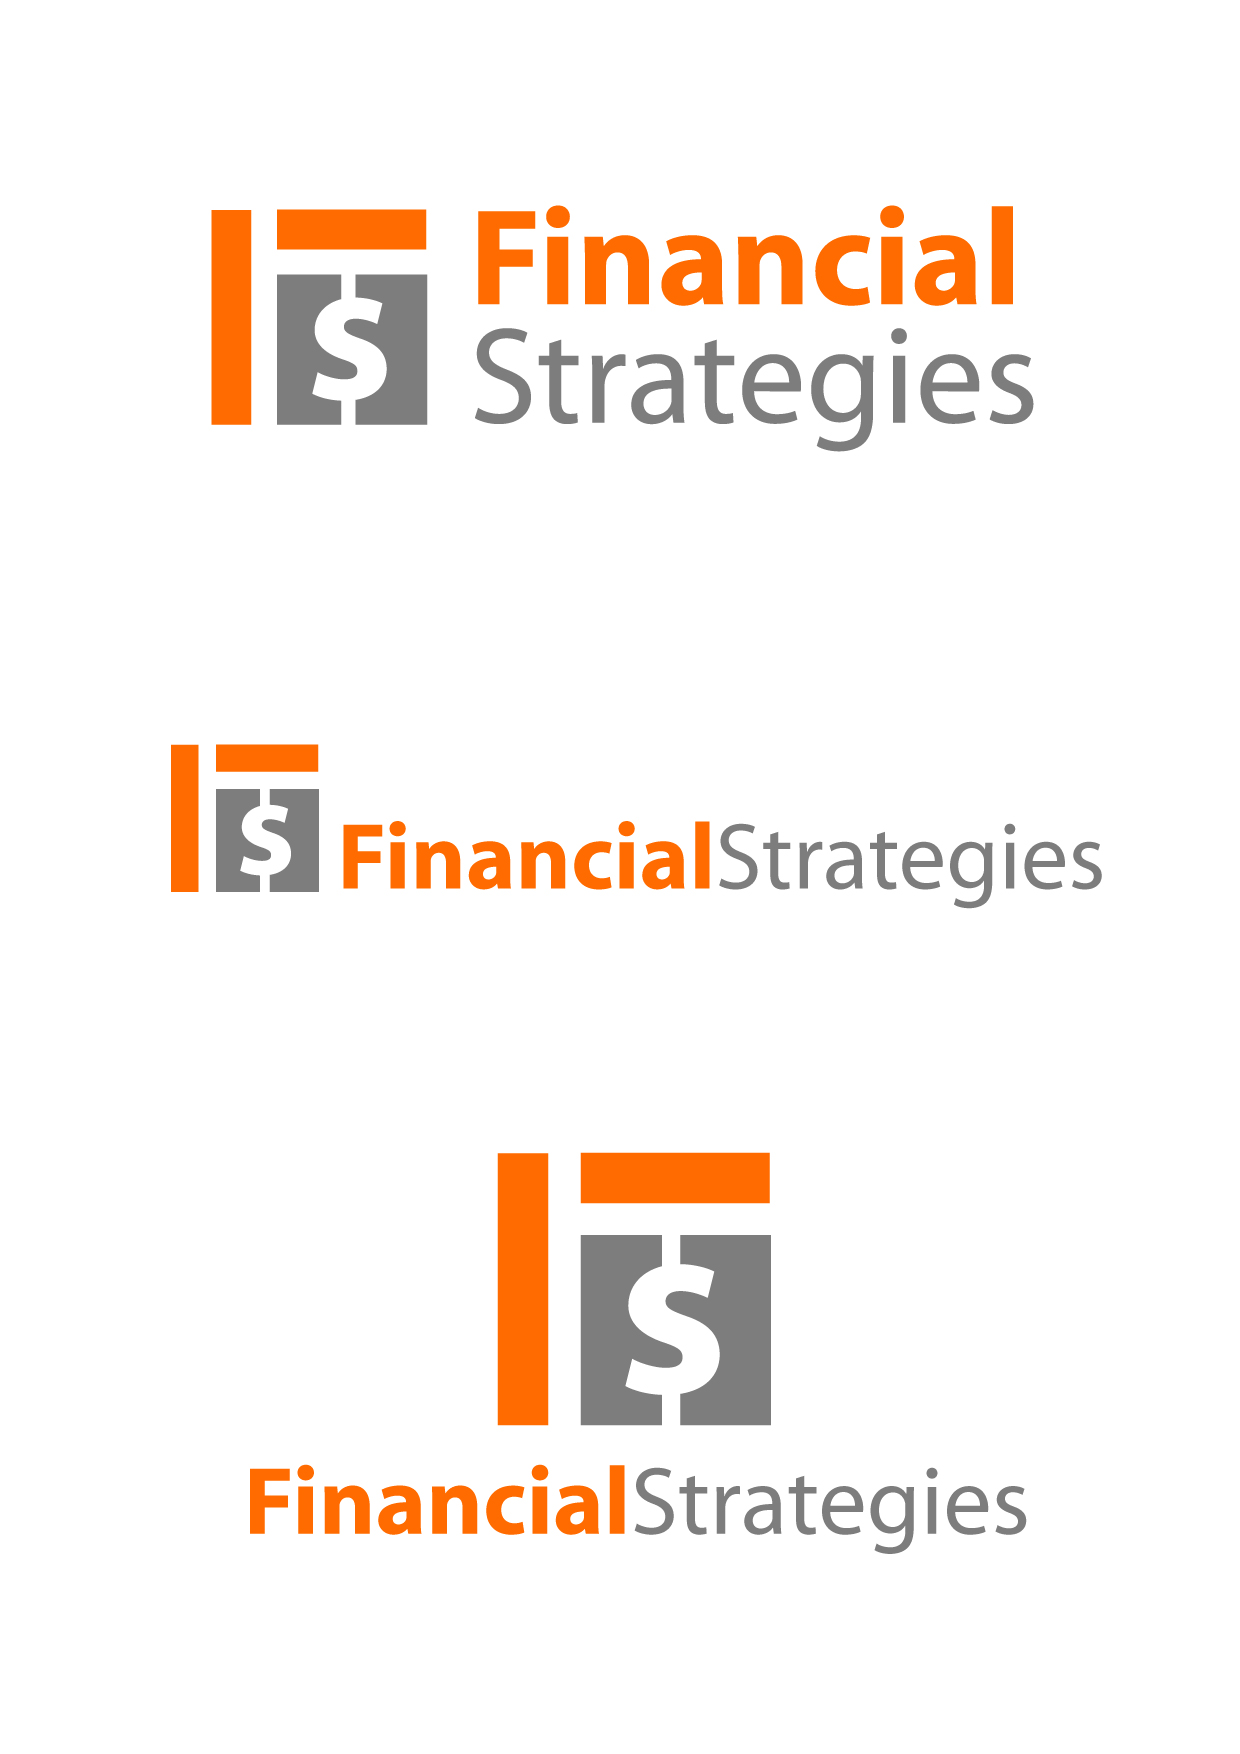 Logo Design by Wilfredo Mendoza - Entry No. 76 in the Logo Design Contest Logo Design Needed for Exciting New Company FS Financial Strategies.